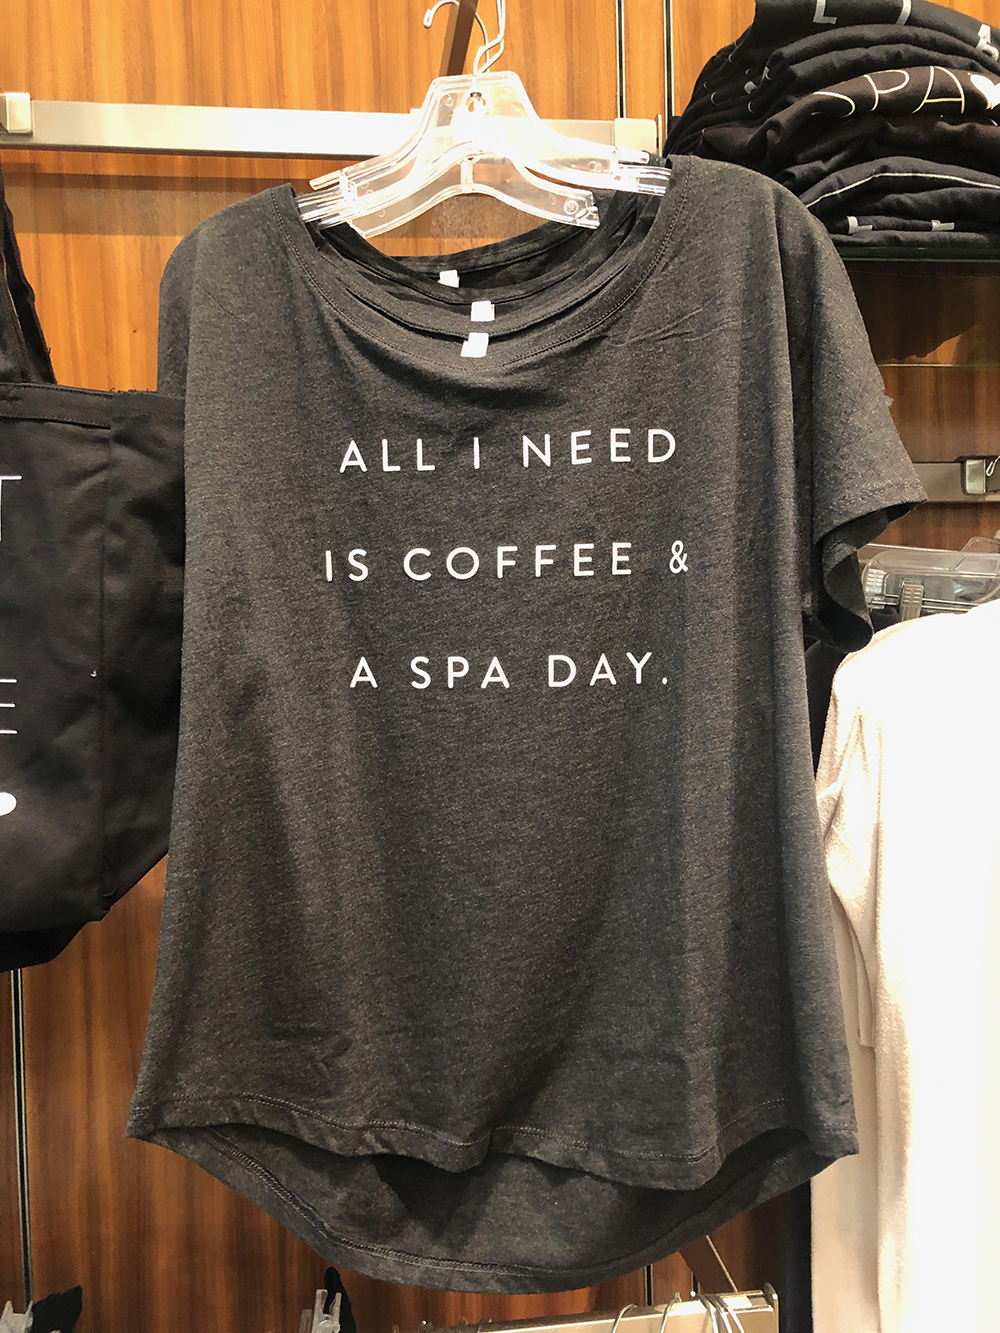 The Spa's retail area sells a variety of great skin care and beauty brands, including fun items like this cute T-shirt that is perfect for any spa lover.